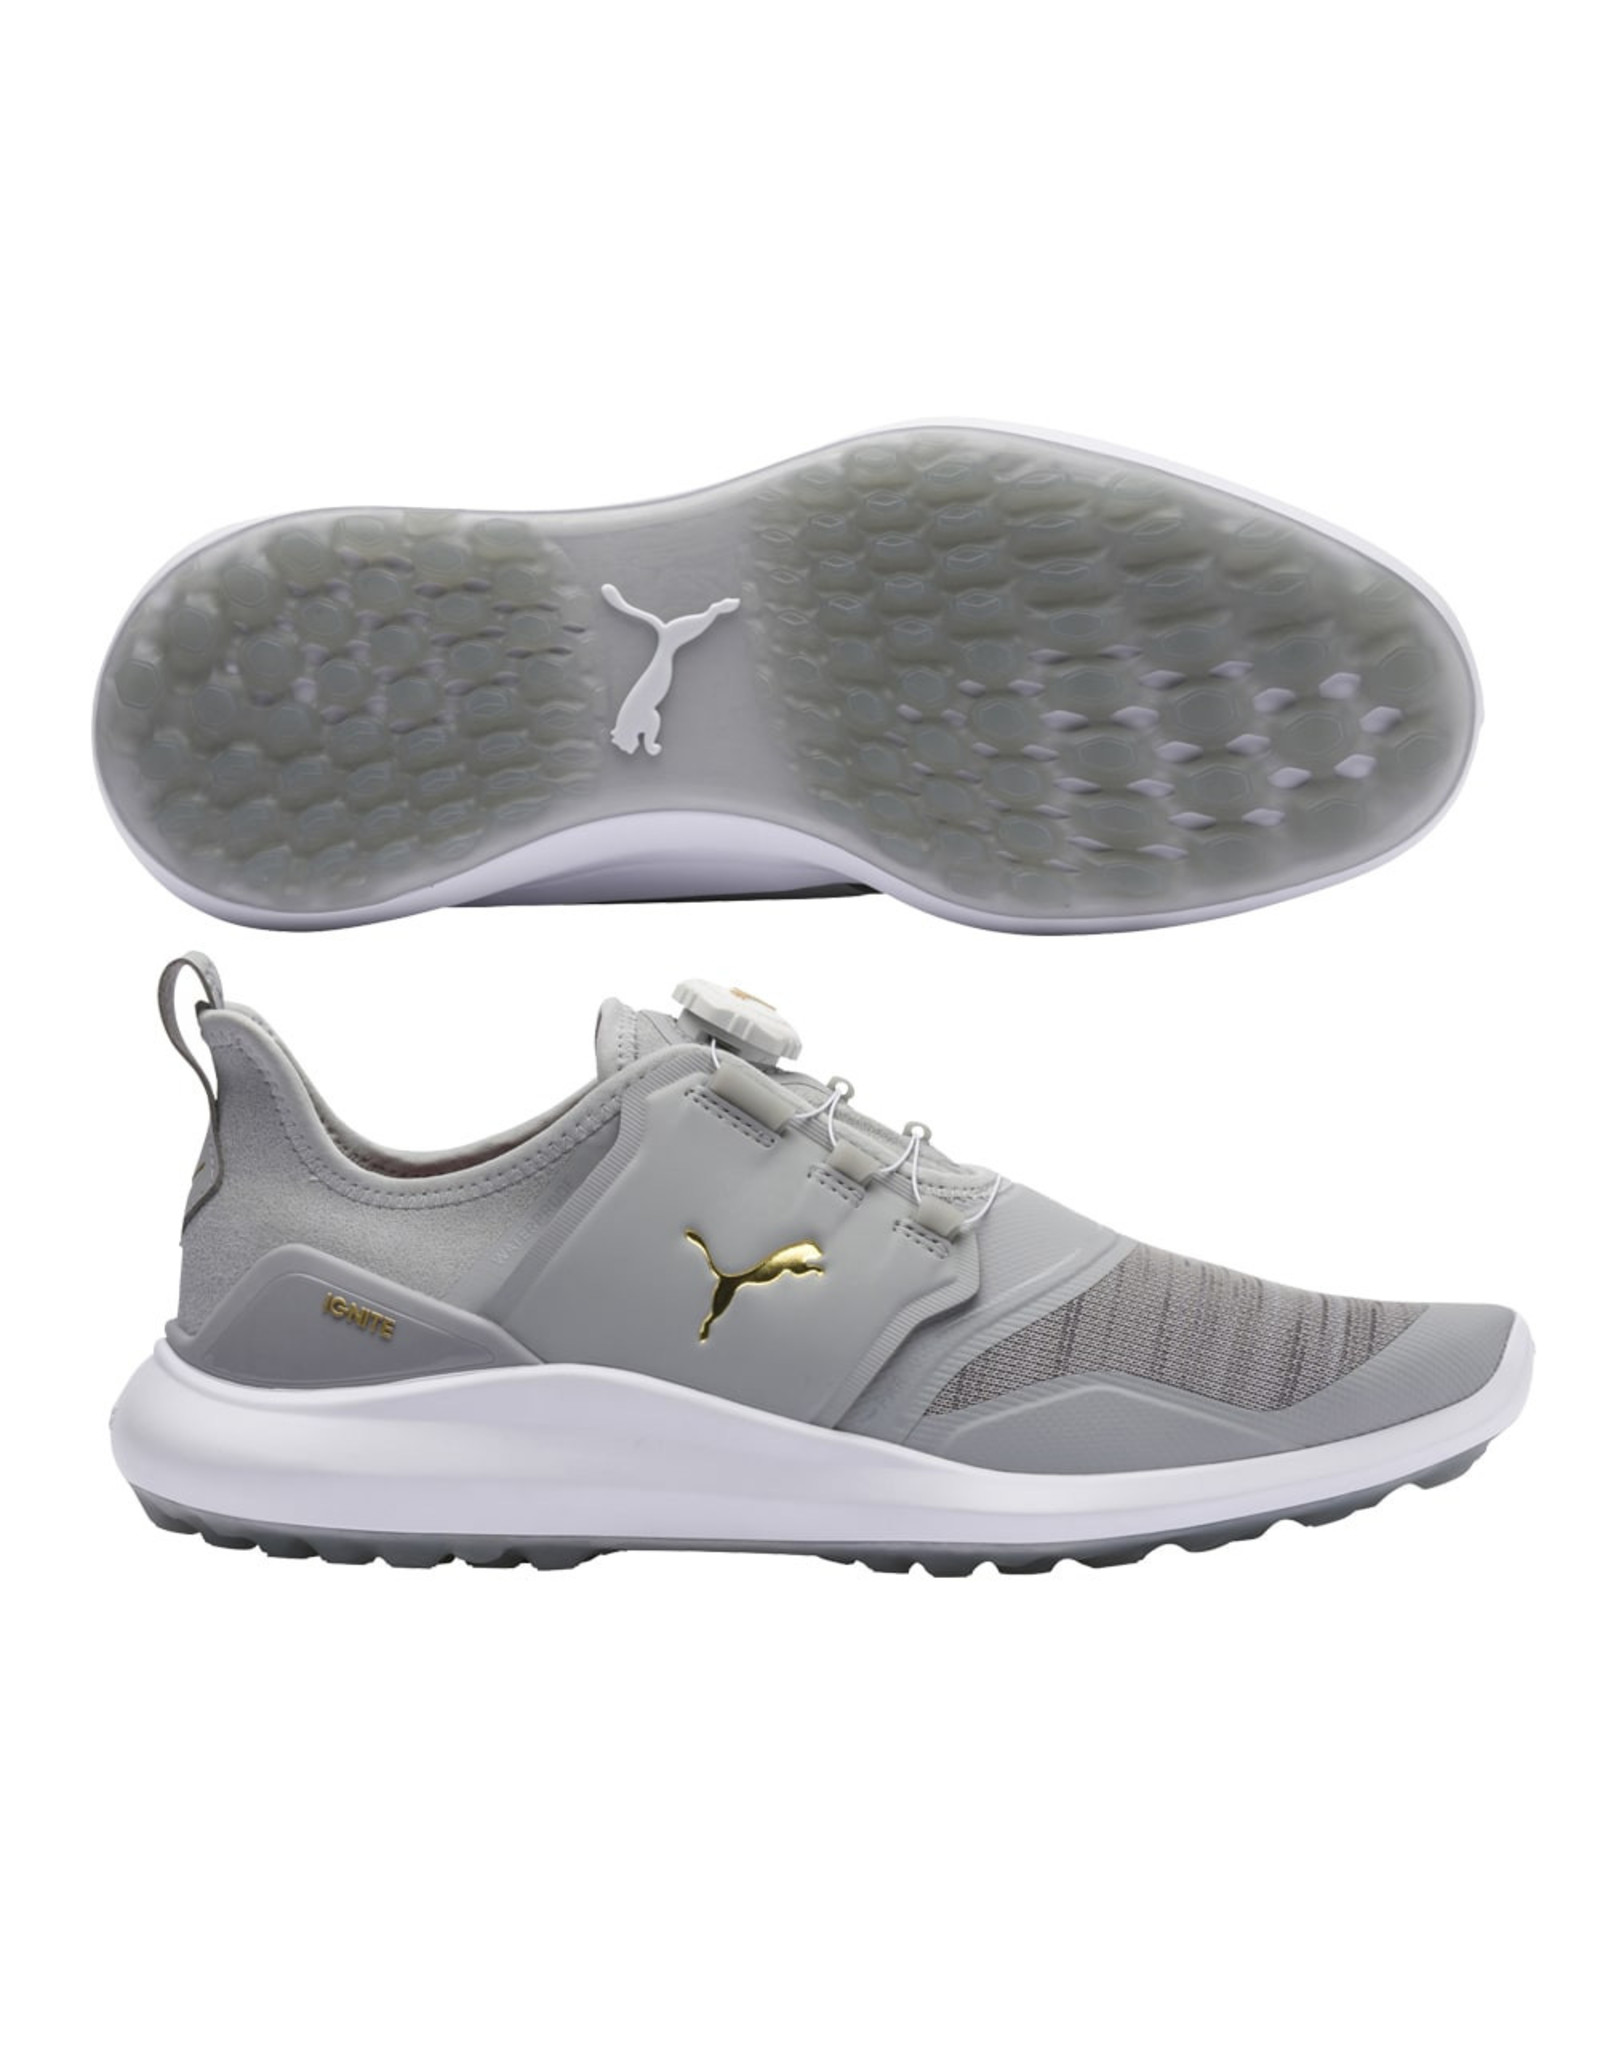 Puma Golf Puma Men's Ignite NXT Disc Golf Shoes